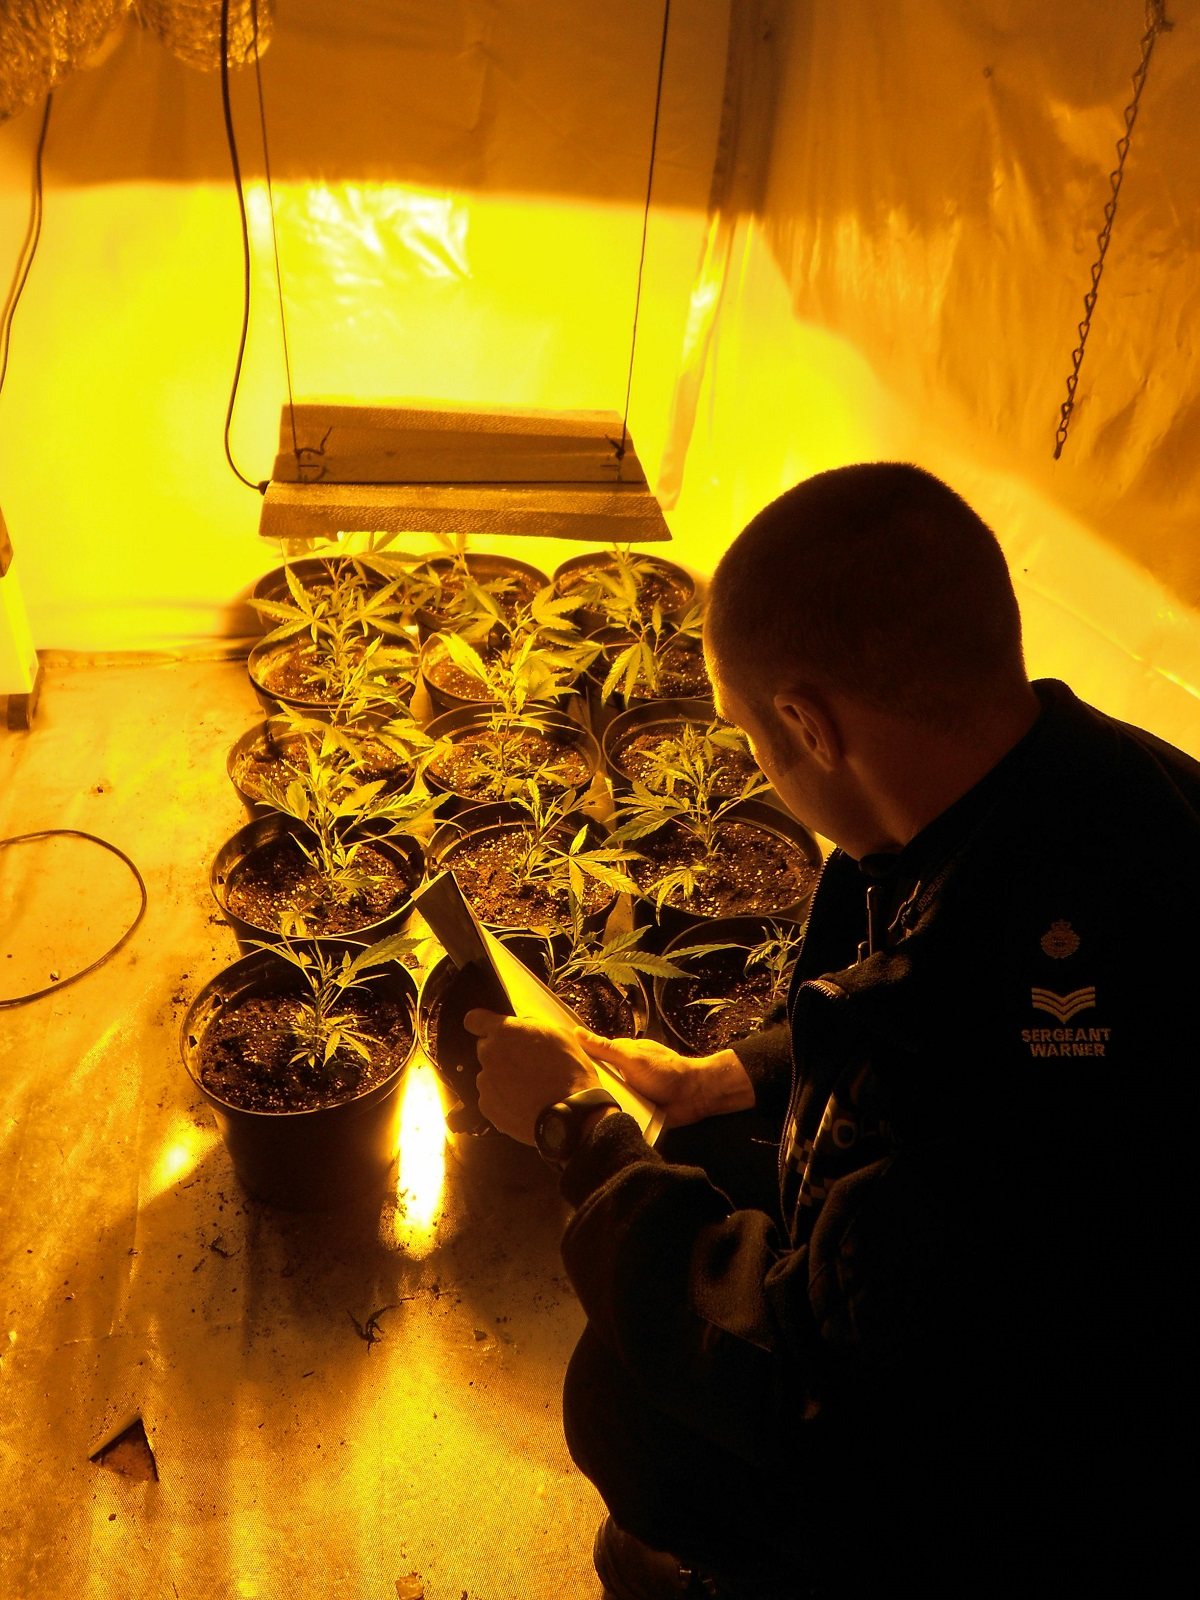 Cannabis factory discovered in rented Chipping Sodbury house